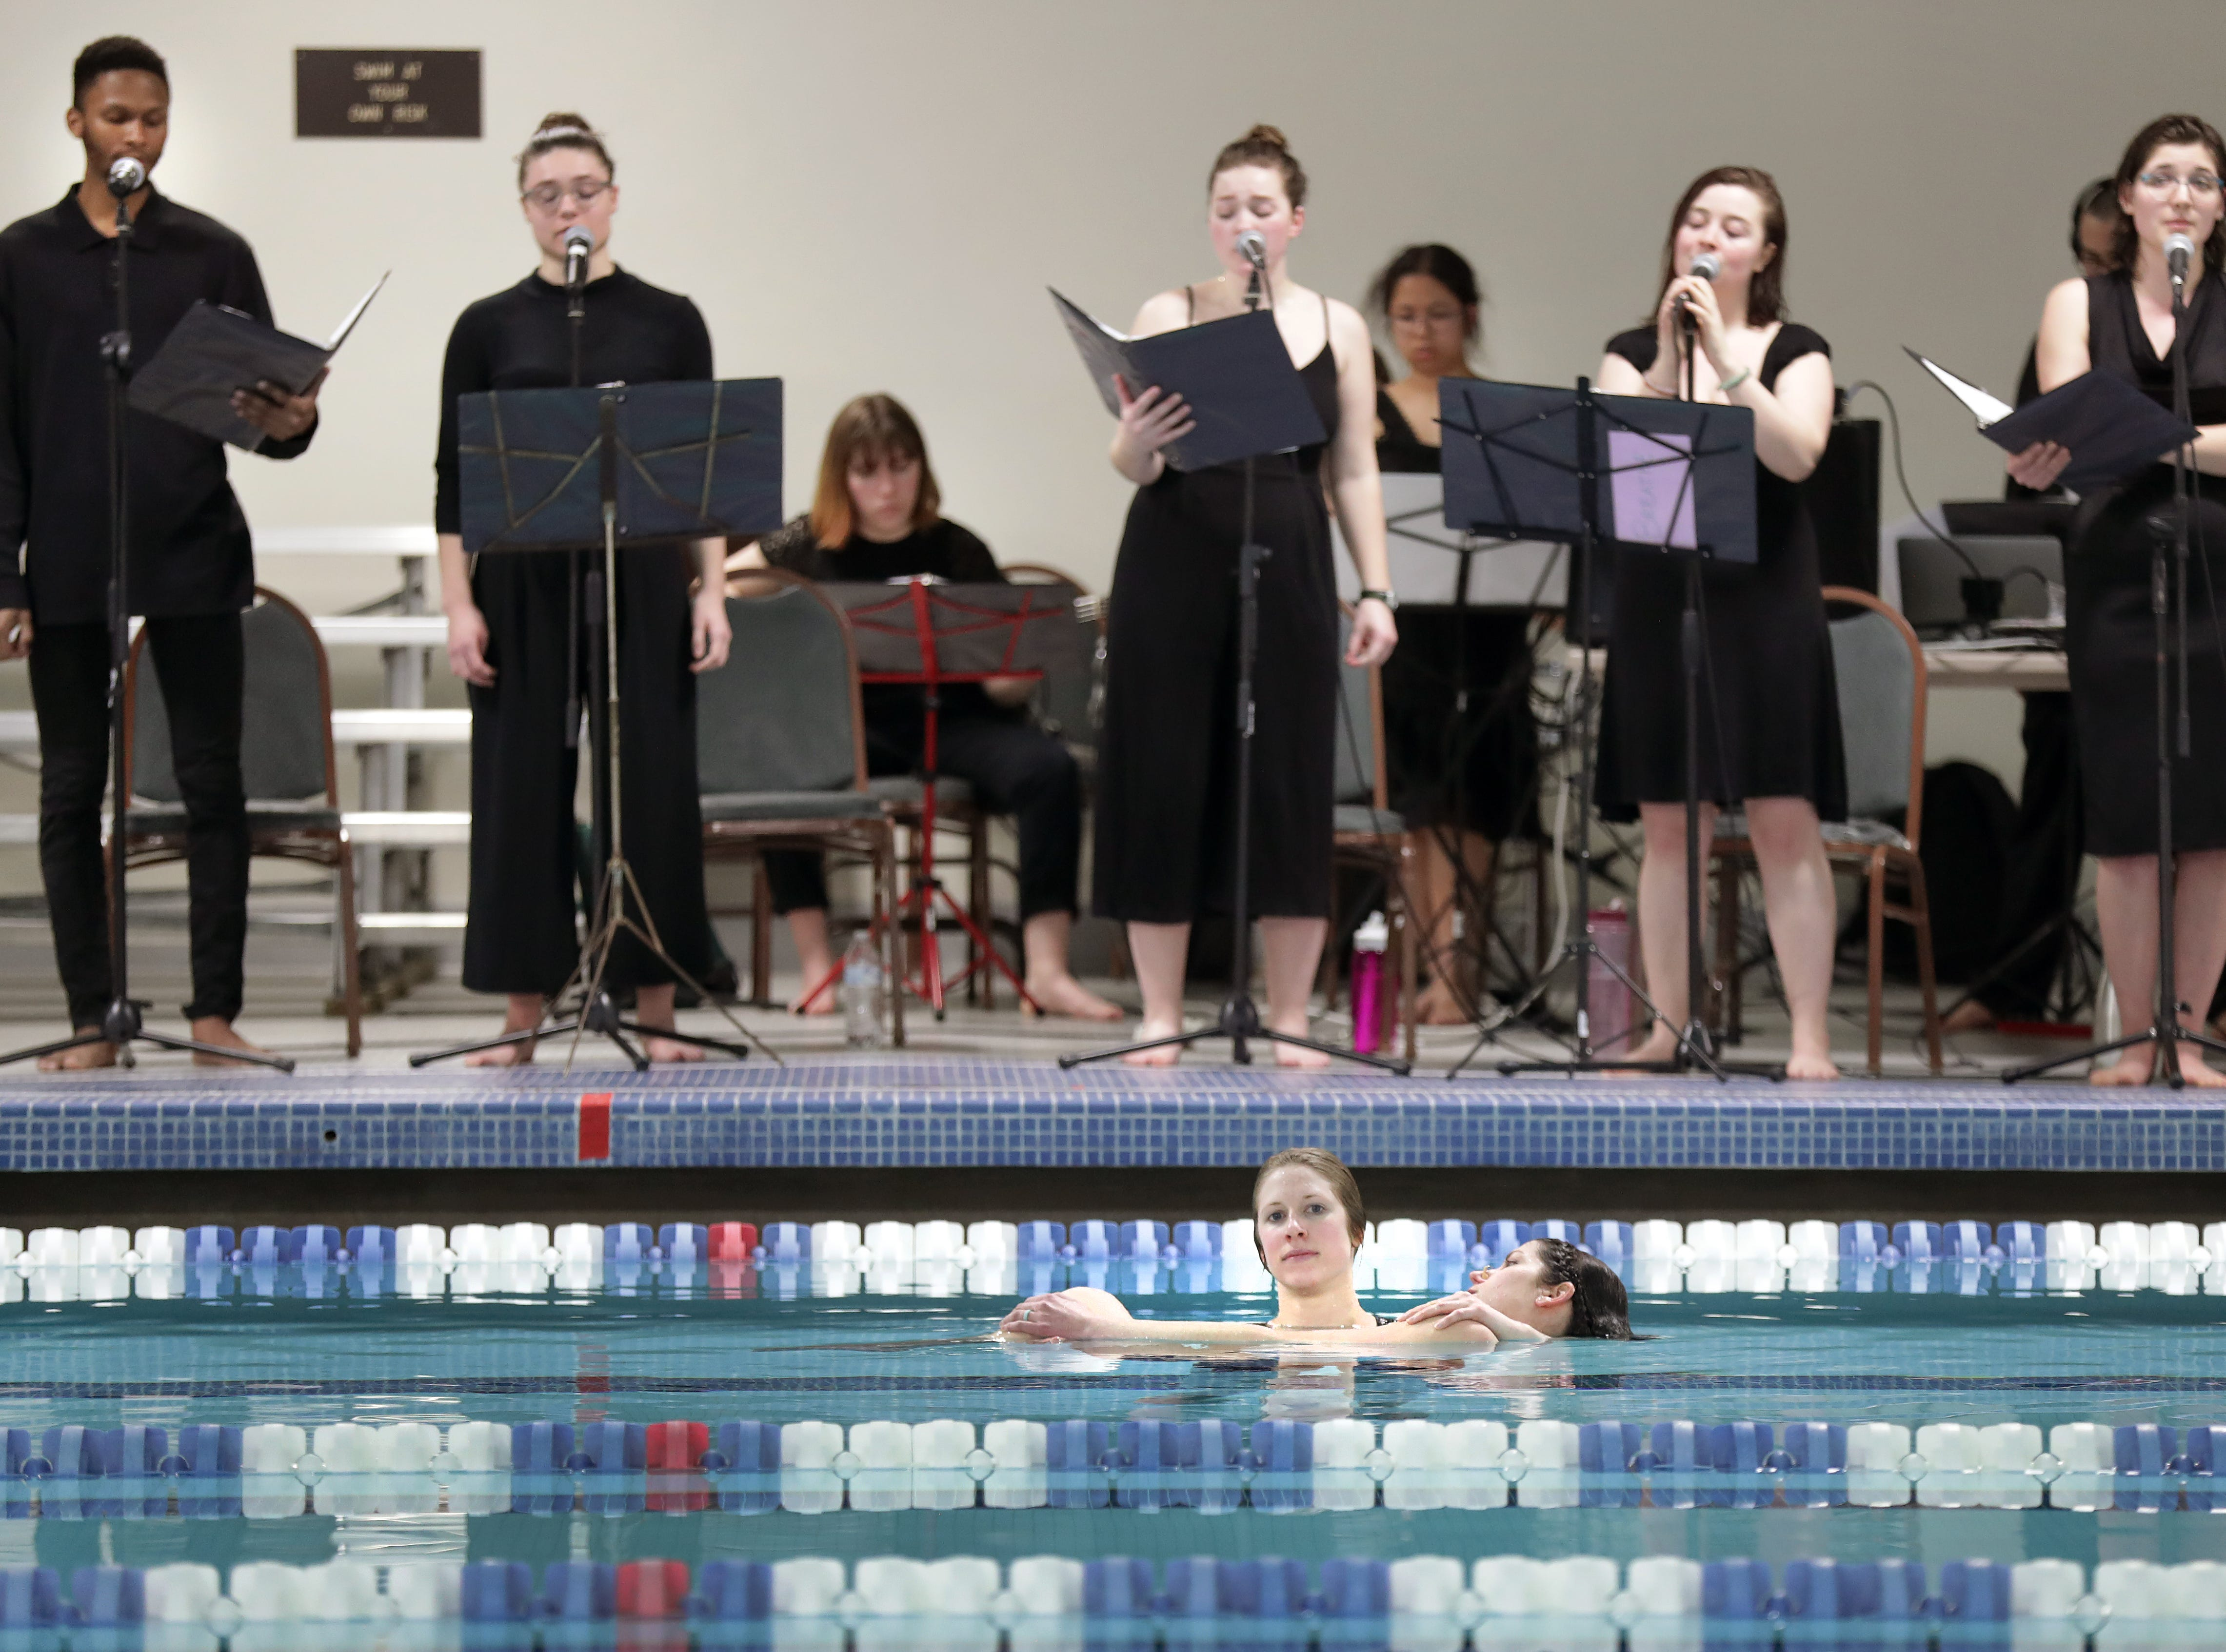 """Rehearsal of """"Breathe: a multi-disciplinary water opera"""" at Lawrence Universty  on Wednesday, March 27, 2019, in Appleton, Wis. will be presented at 8 p.m. March 30 and 31 at LUÕs Buchanan Kiewit Wellness Center pool. Admission is free but reservations are requiredWm. Glasheen/USA TODAY NETWORK-Wisconsin."""